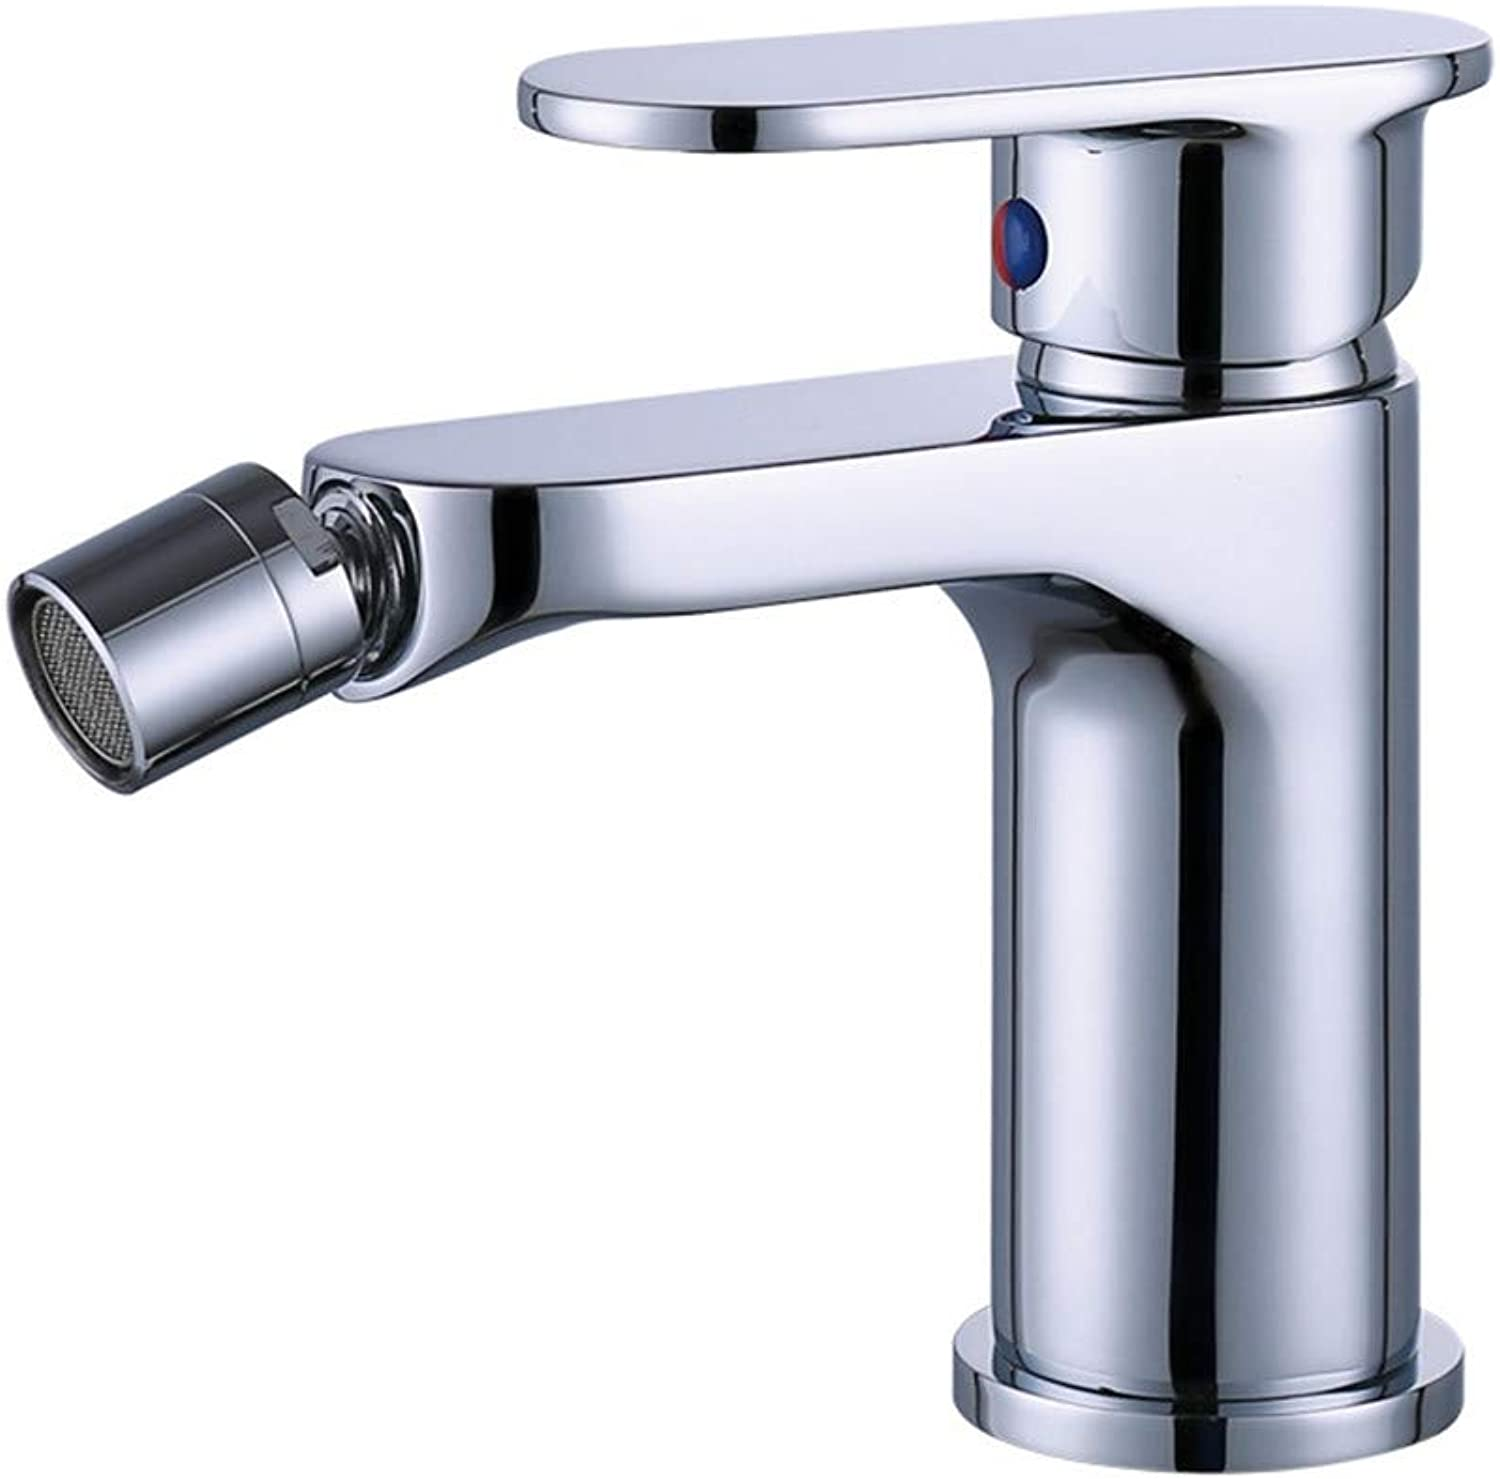 JONTON Taps Taps Taps Copper Hot And Cold Activity Spout Faucet Plating Thickening Wide Handle Long Mouth Above Counter Basin Faucet